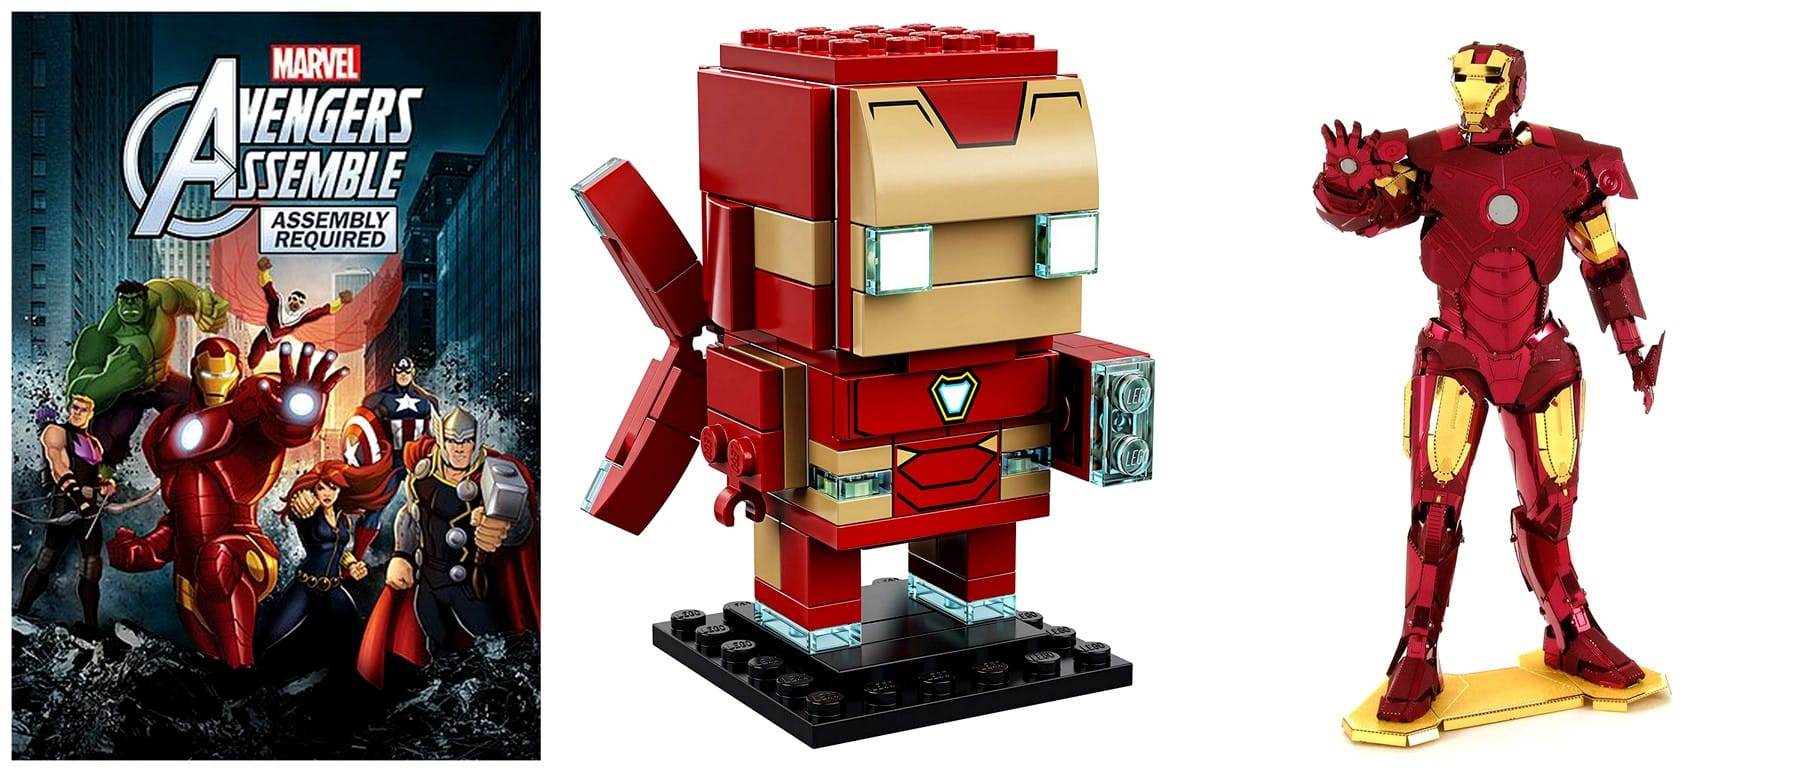 32 Of The Best Marvel Gifts For Die Hard Fans Right Now